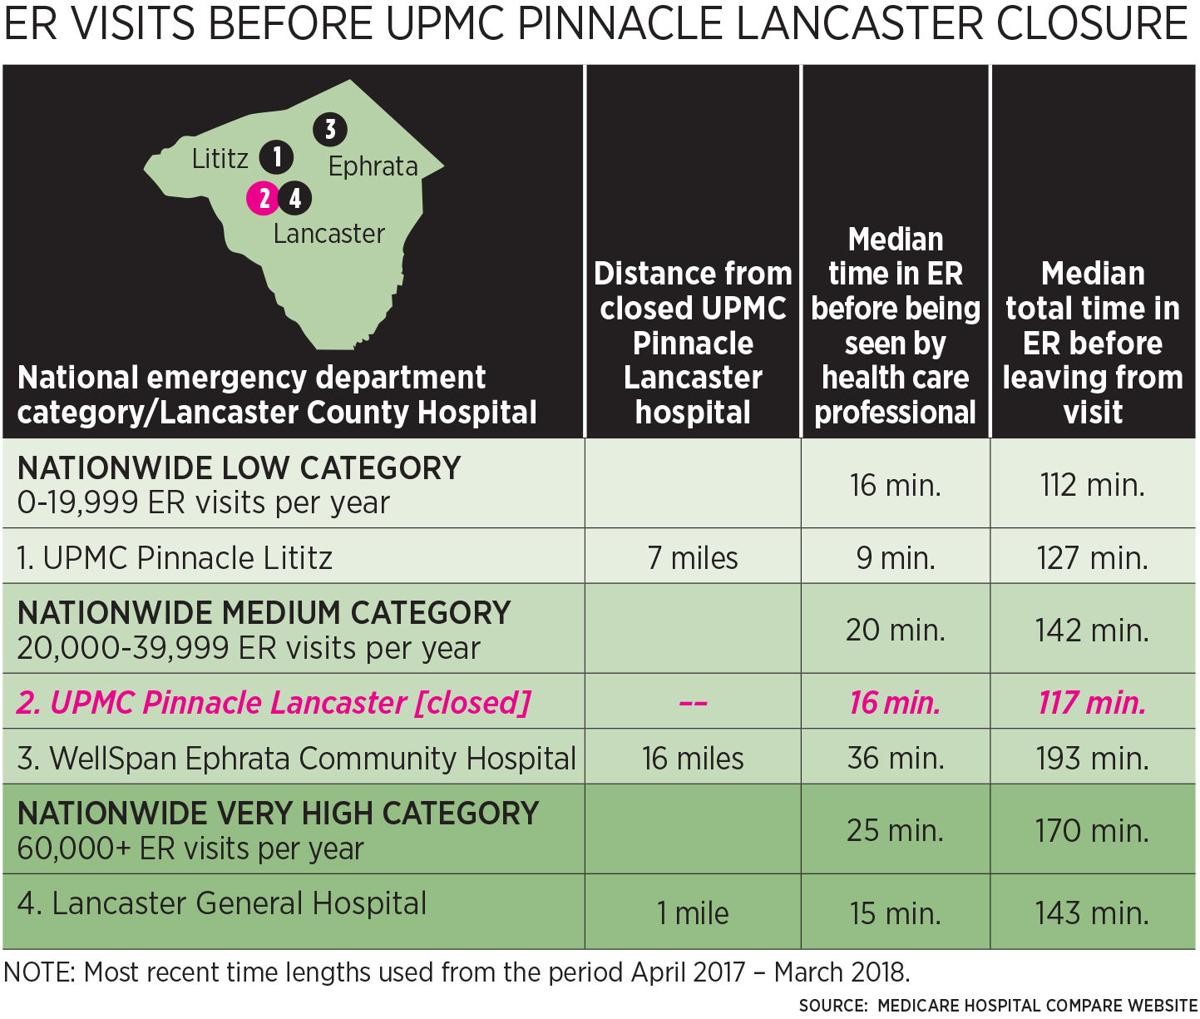 How UPMC Pinnacle Lancaster's closing is affecting Lancaster